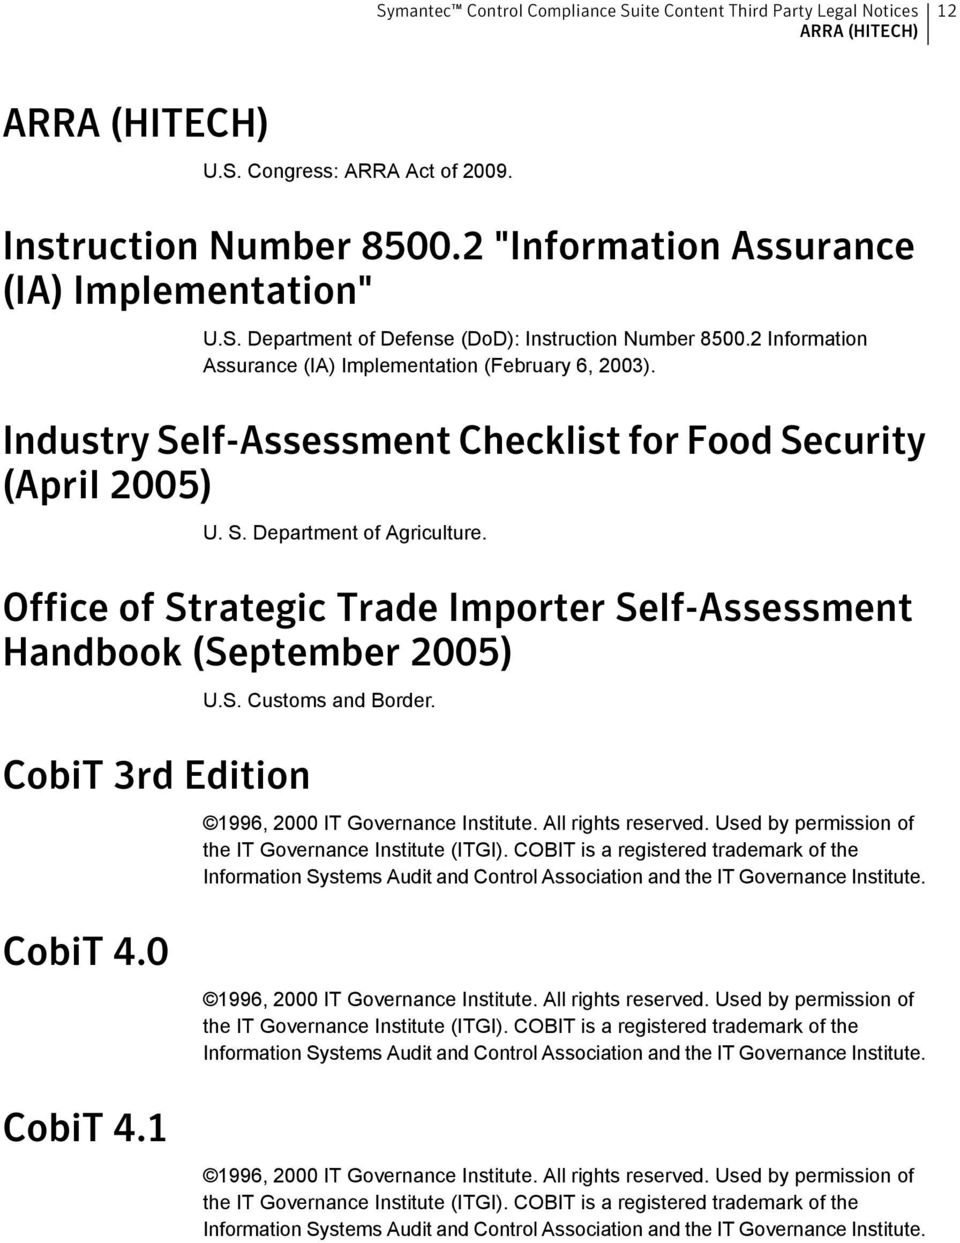 Office of Strategic Trade Importer Self-Assessment Handbook (September 2005) CobiT 3rd Edition U.S. Customs and Border. 1996, 2000 IT Governance Institute. All rights reserved.